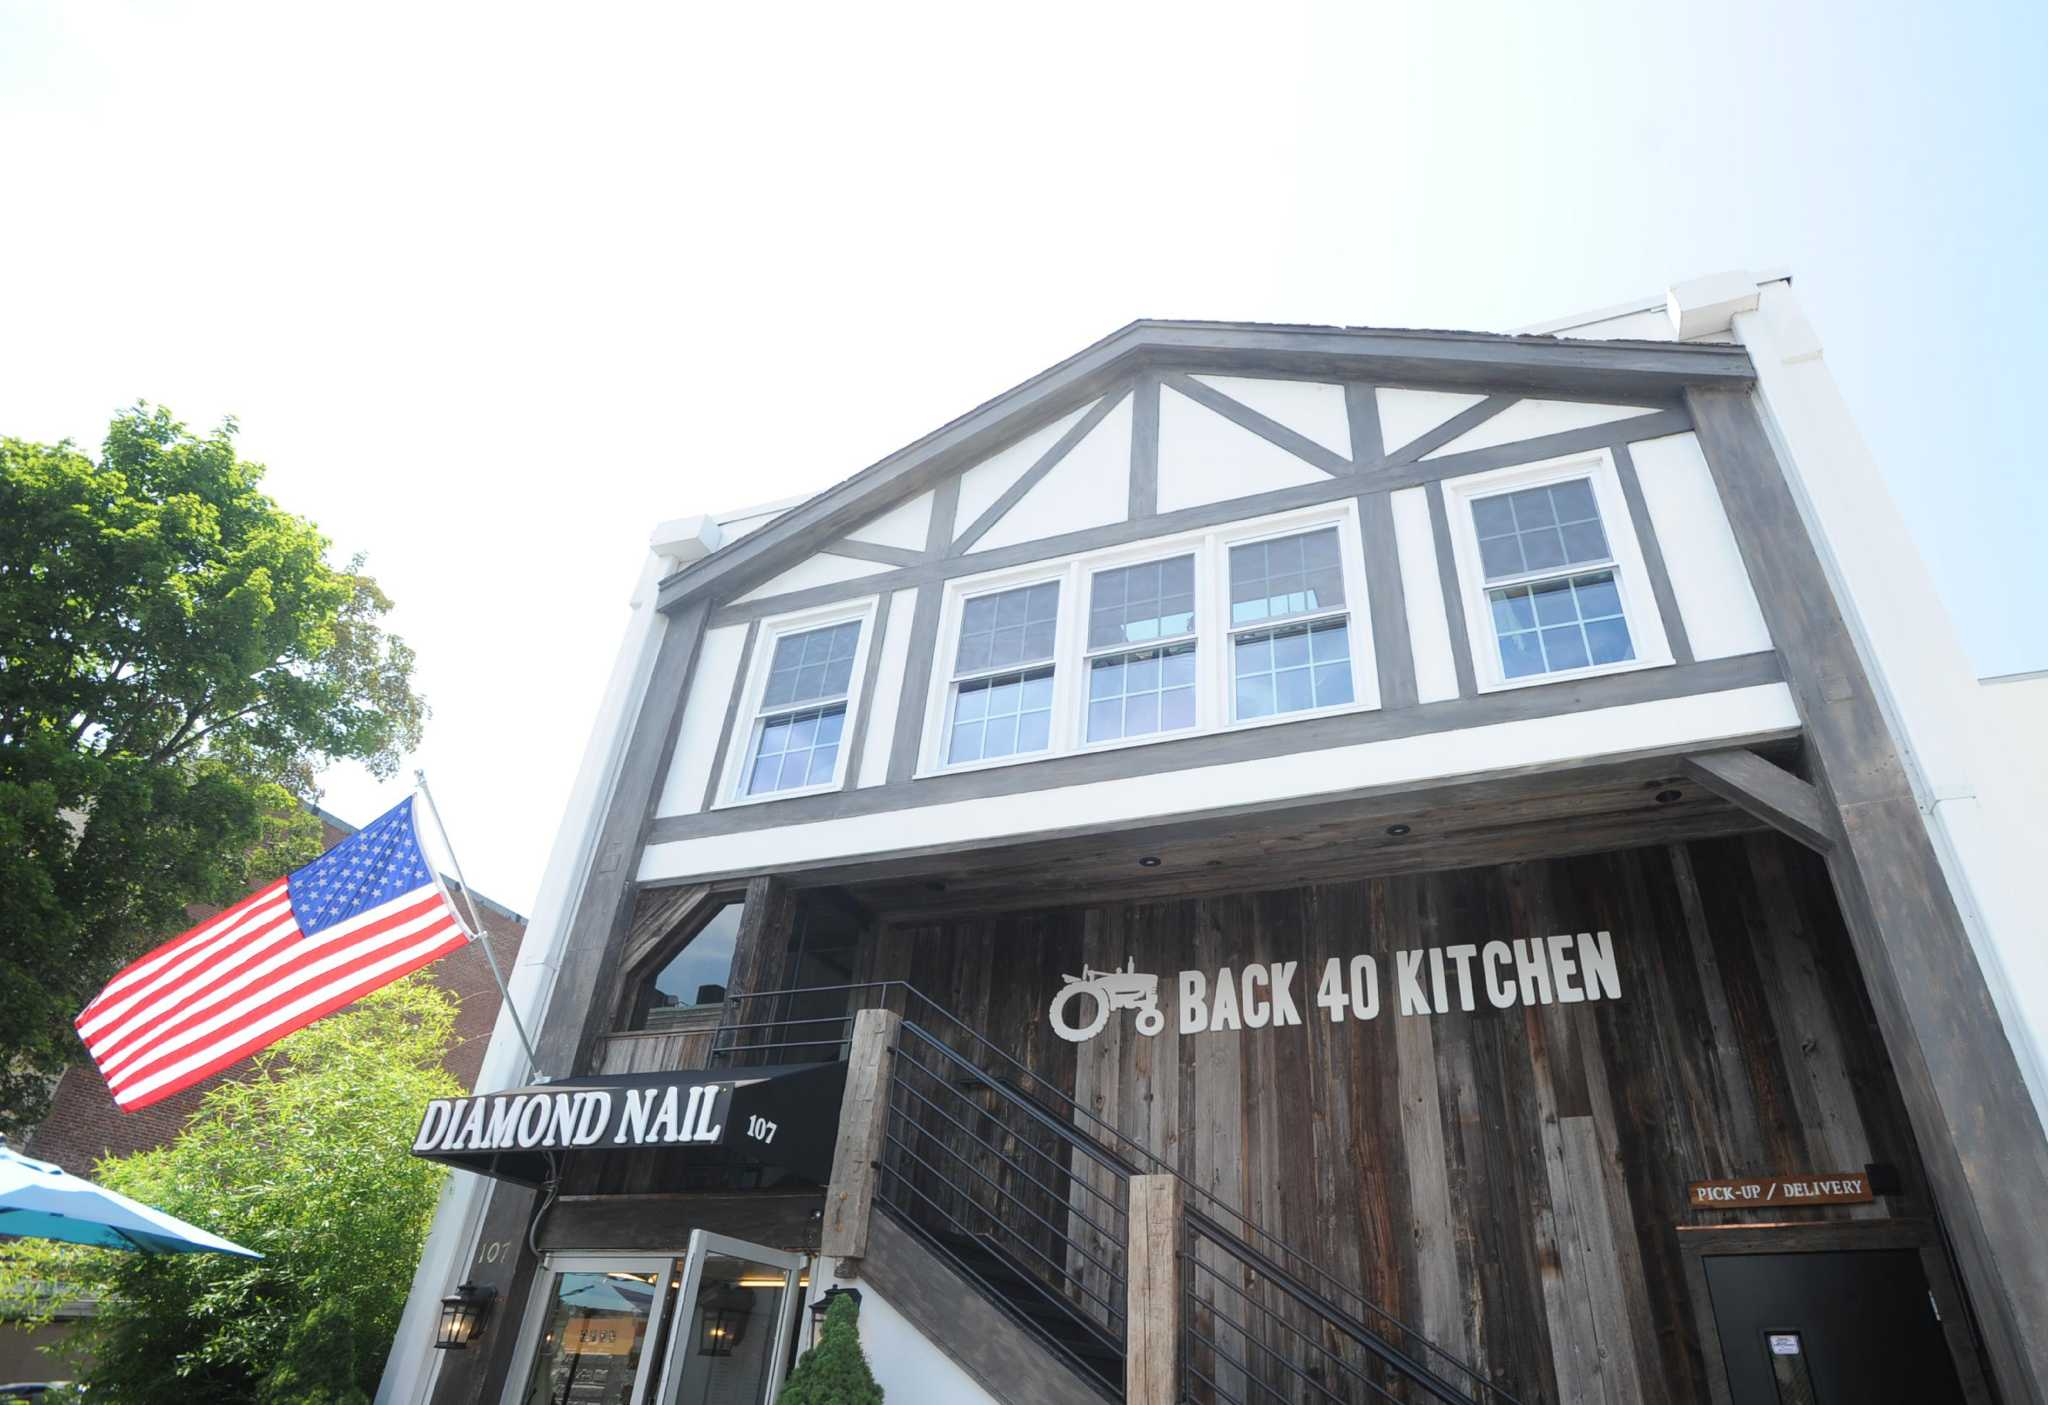 greenwich spot named best farm to table restaurant in conn greenwichtime - Back 40 Kitchen